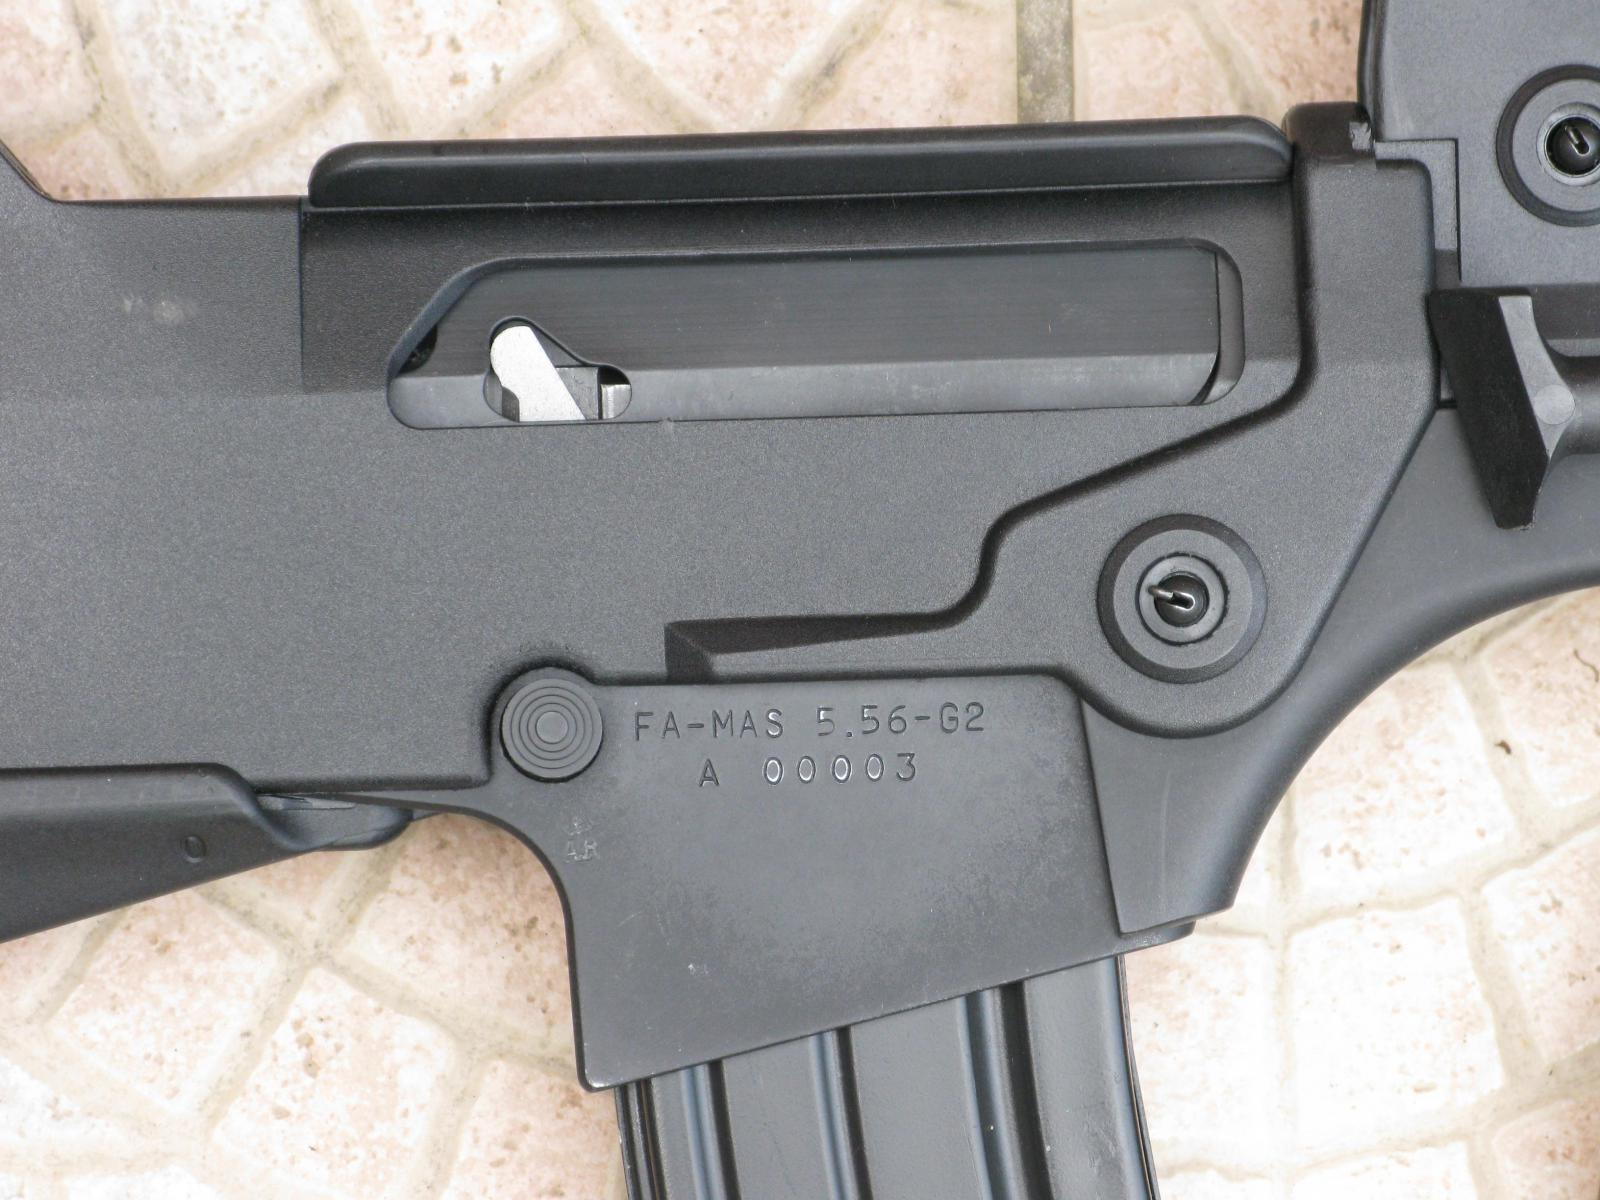 FAMAS_G2Markings.jpg